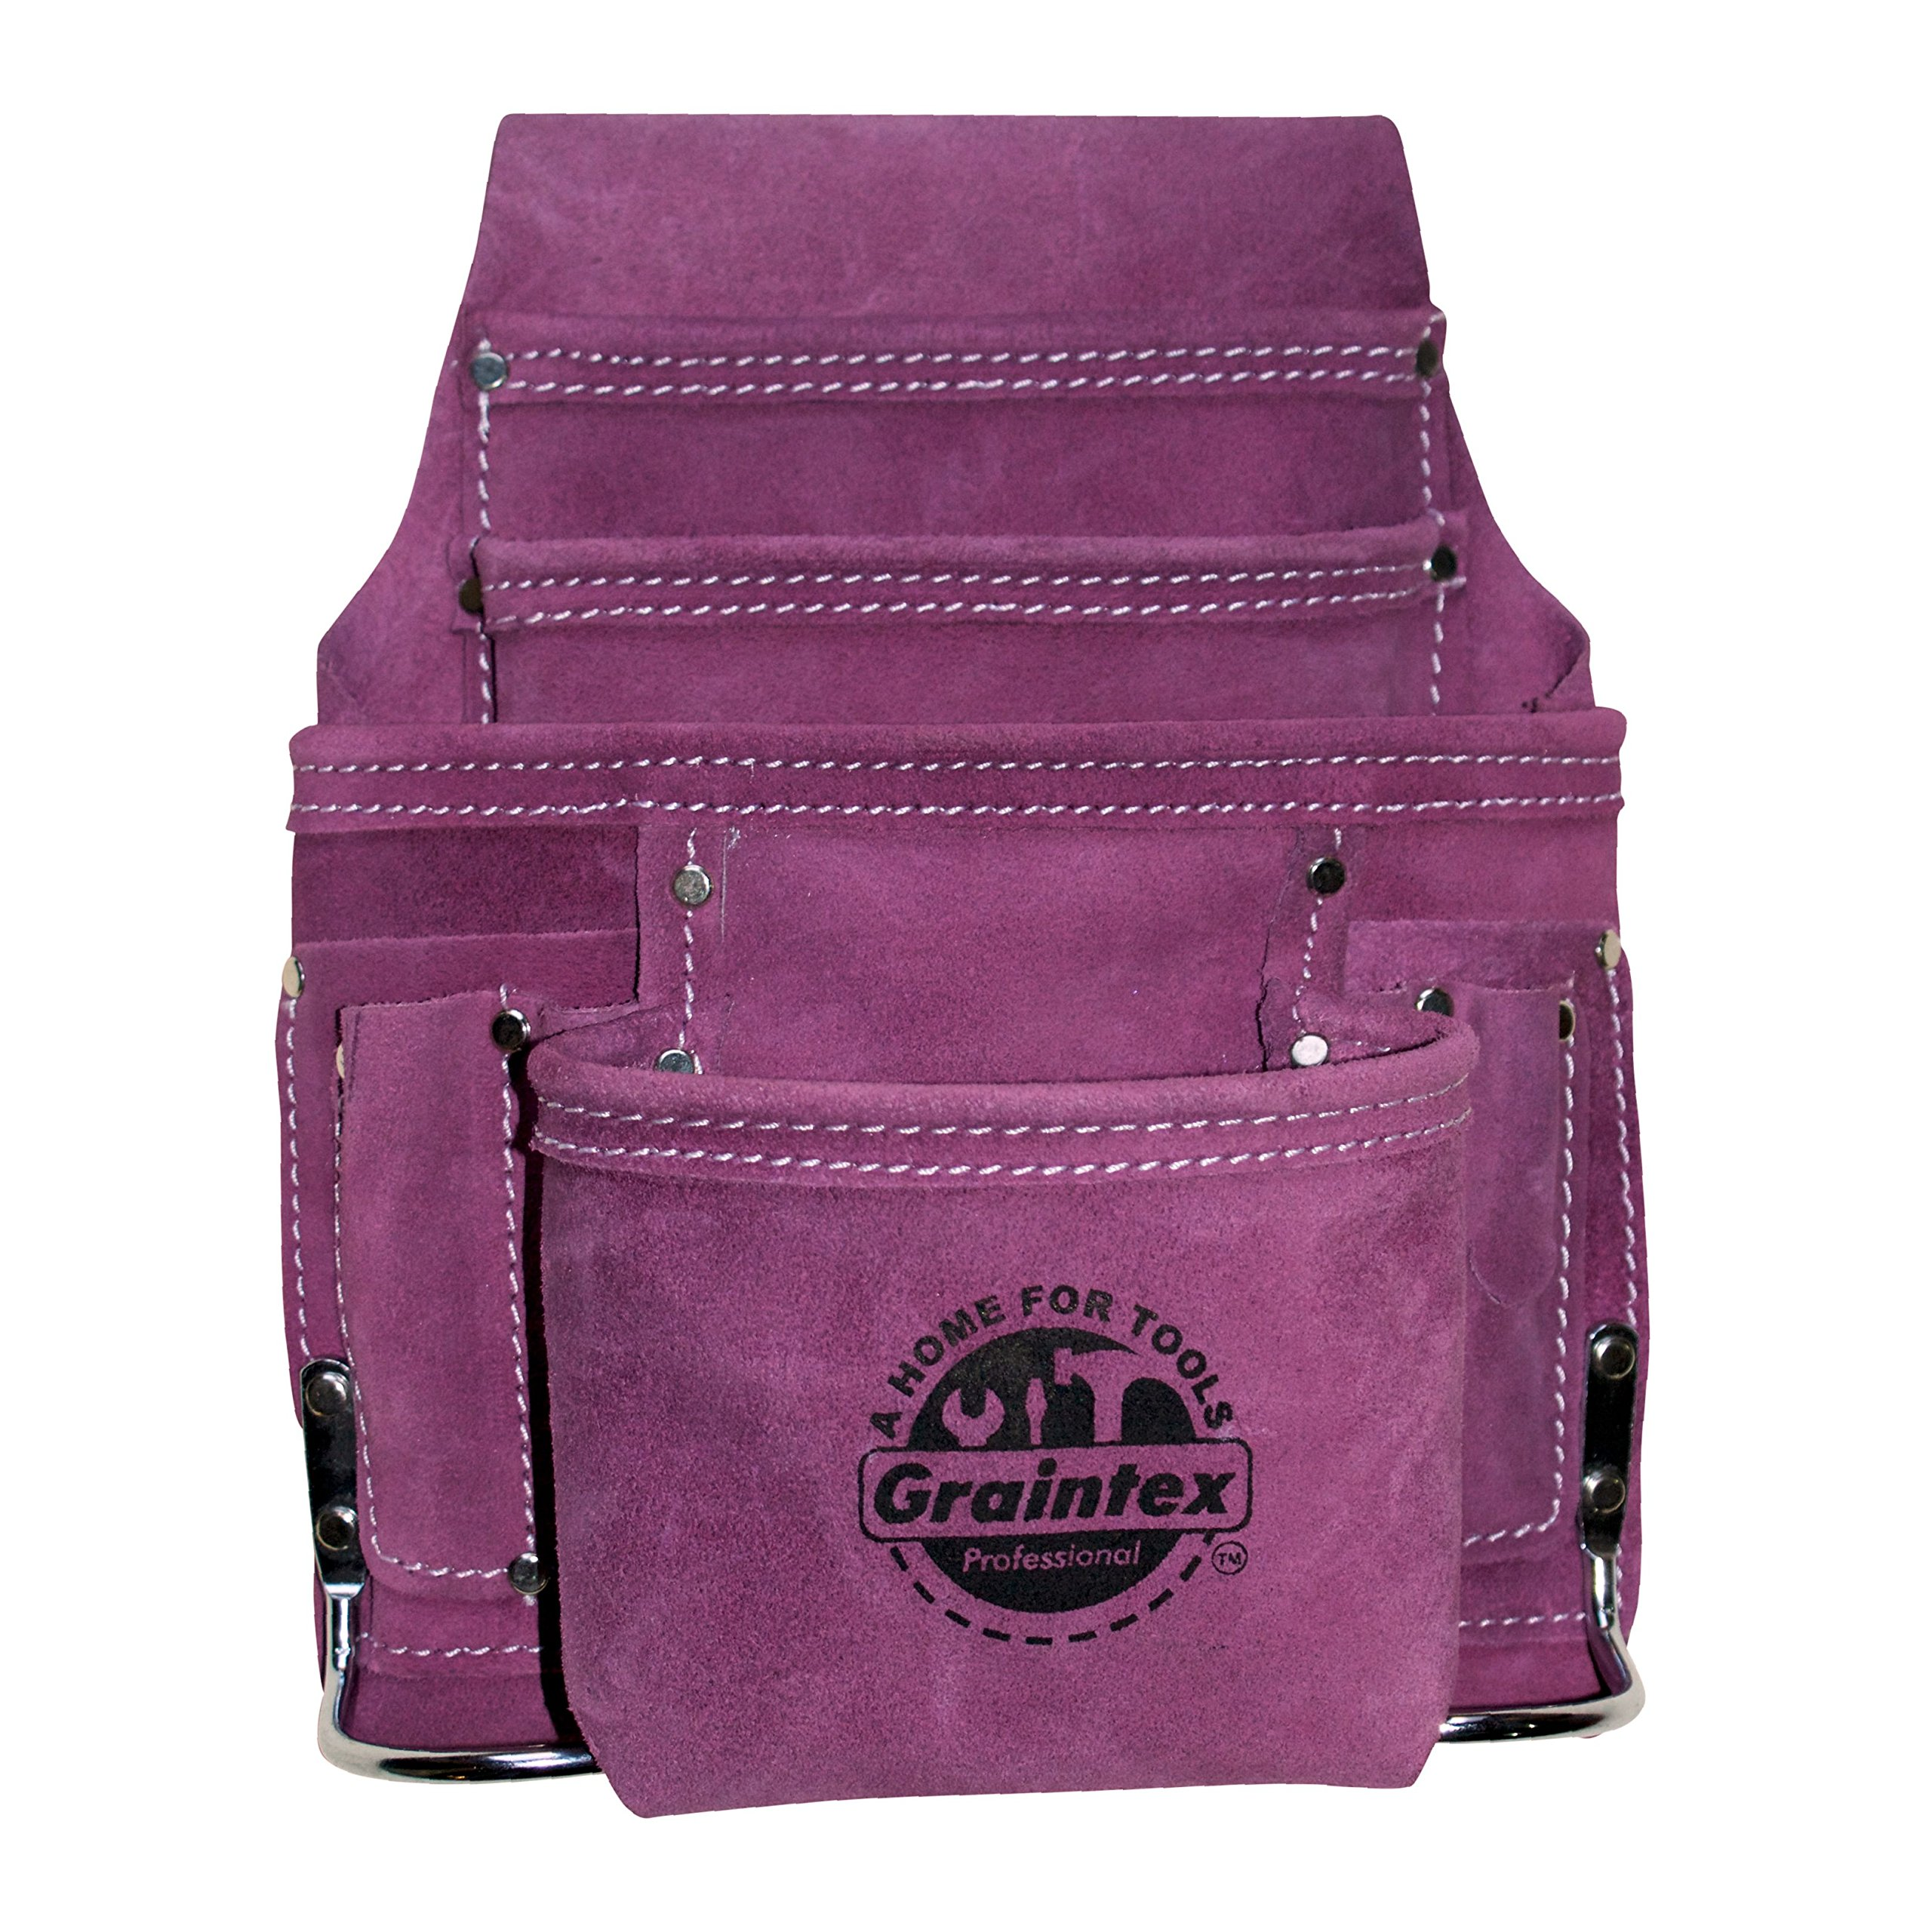 Graintex SS1123 Purple Leather 10 Pocket Tool Pouch